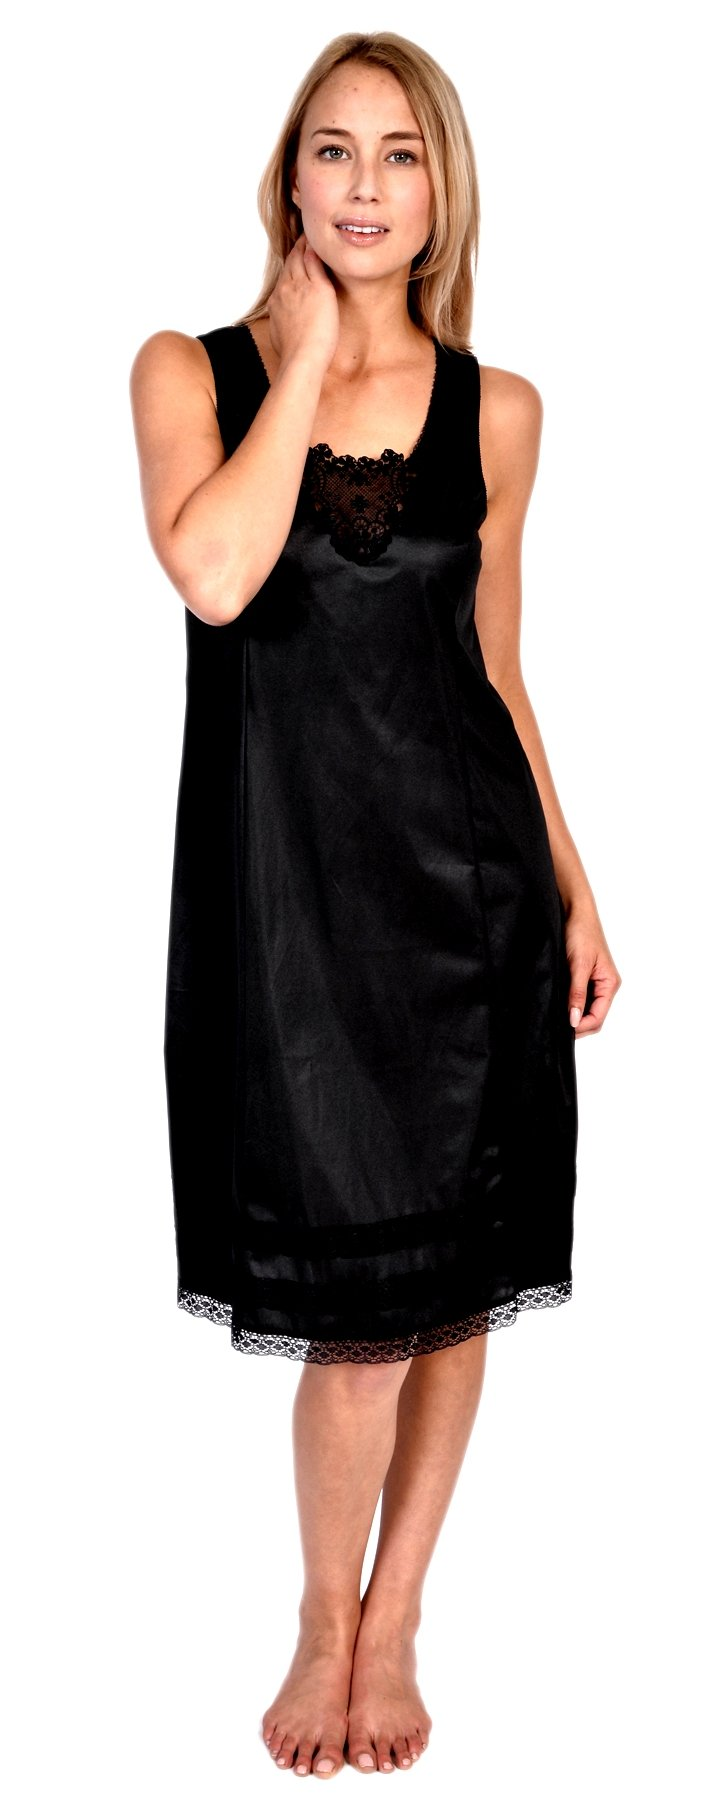 Patricia Womens Underdress Full Slip Lace Snip-it (36-40 inches S-XXXXL)